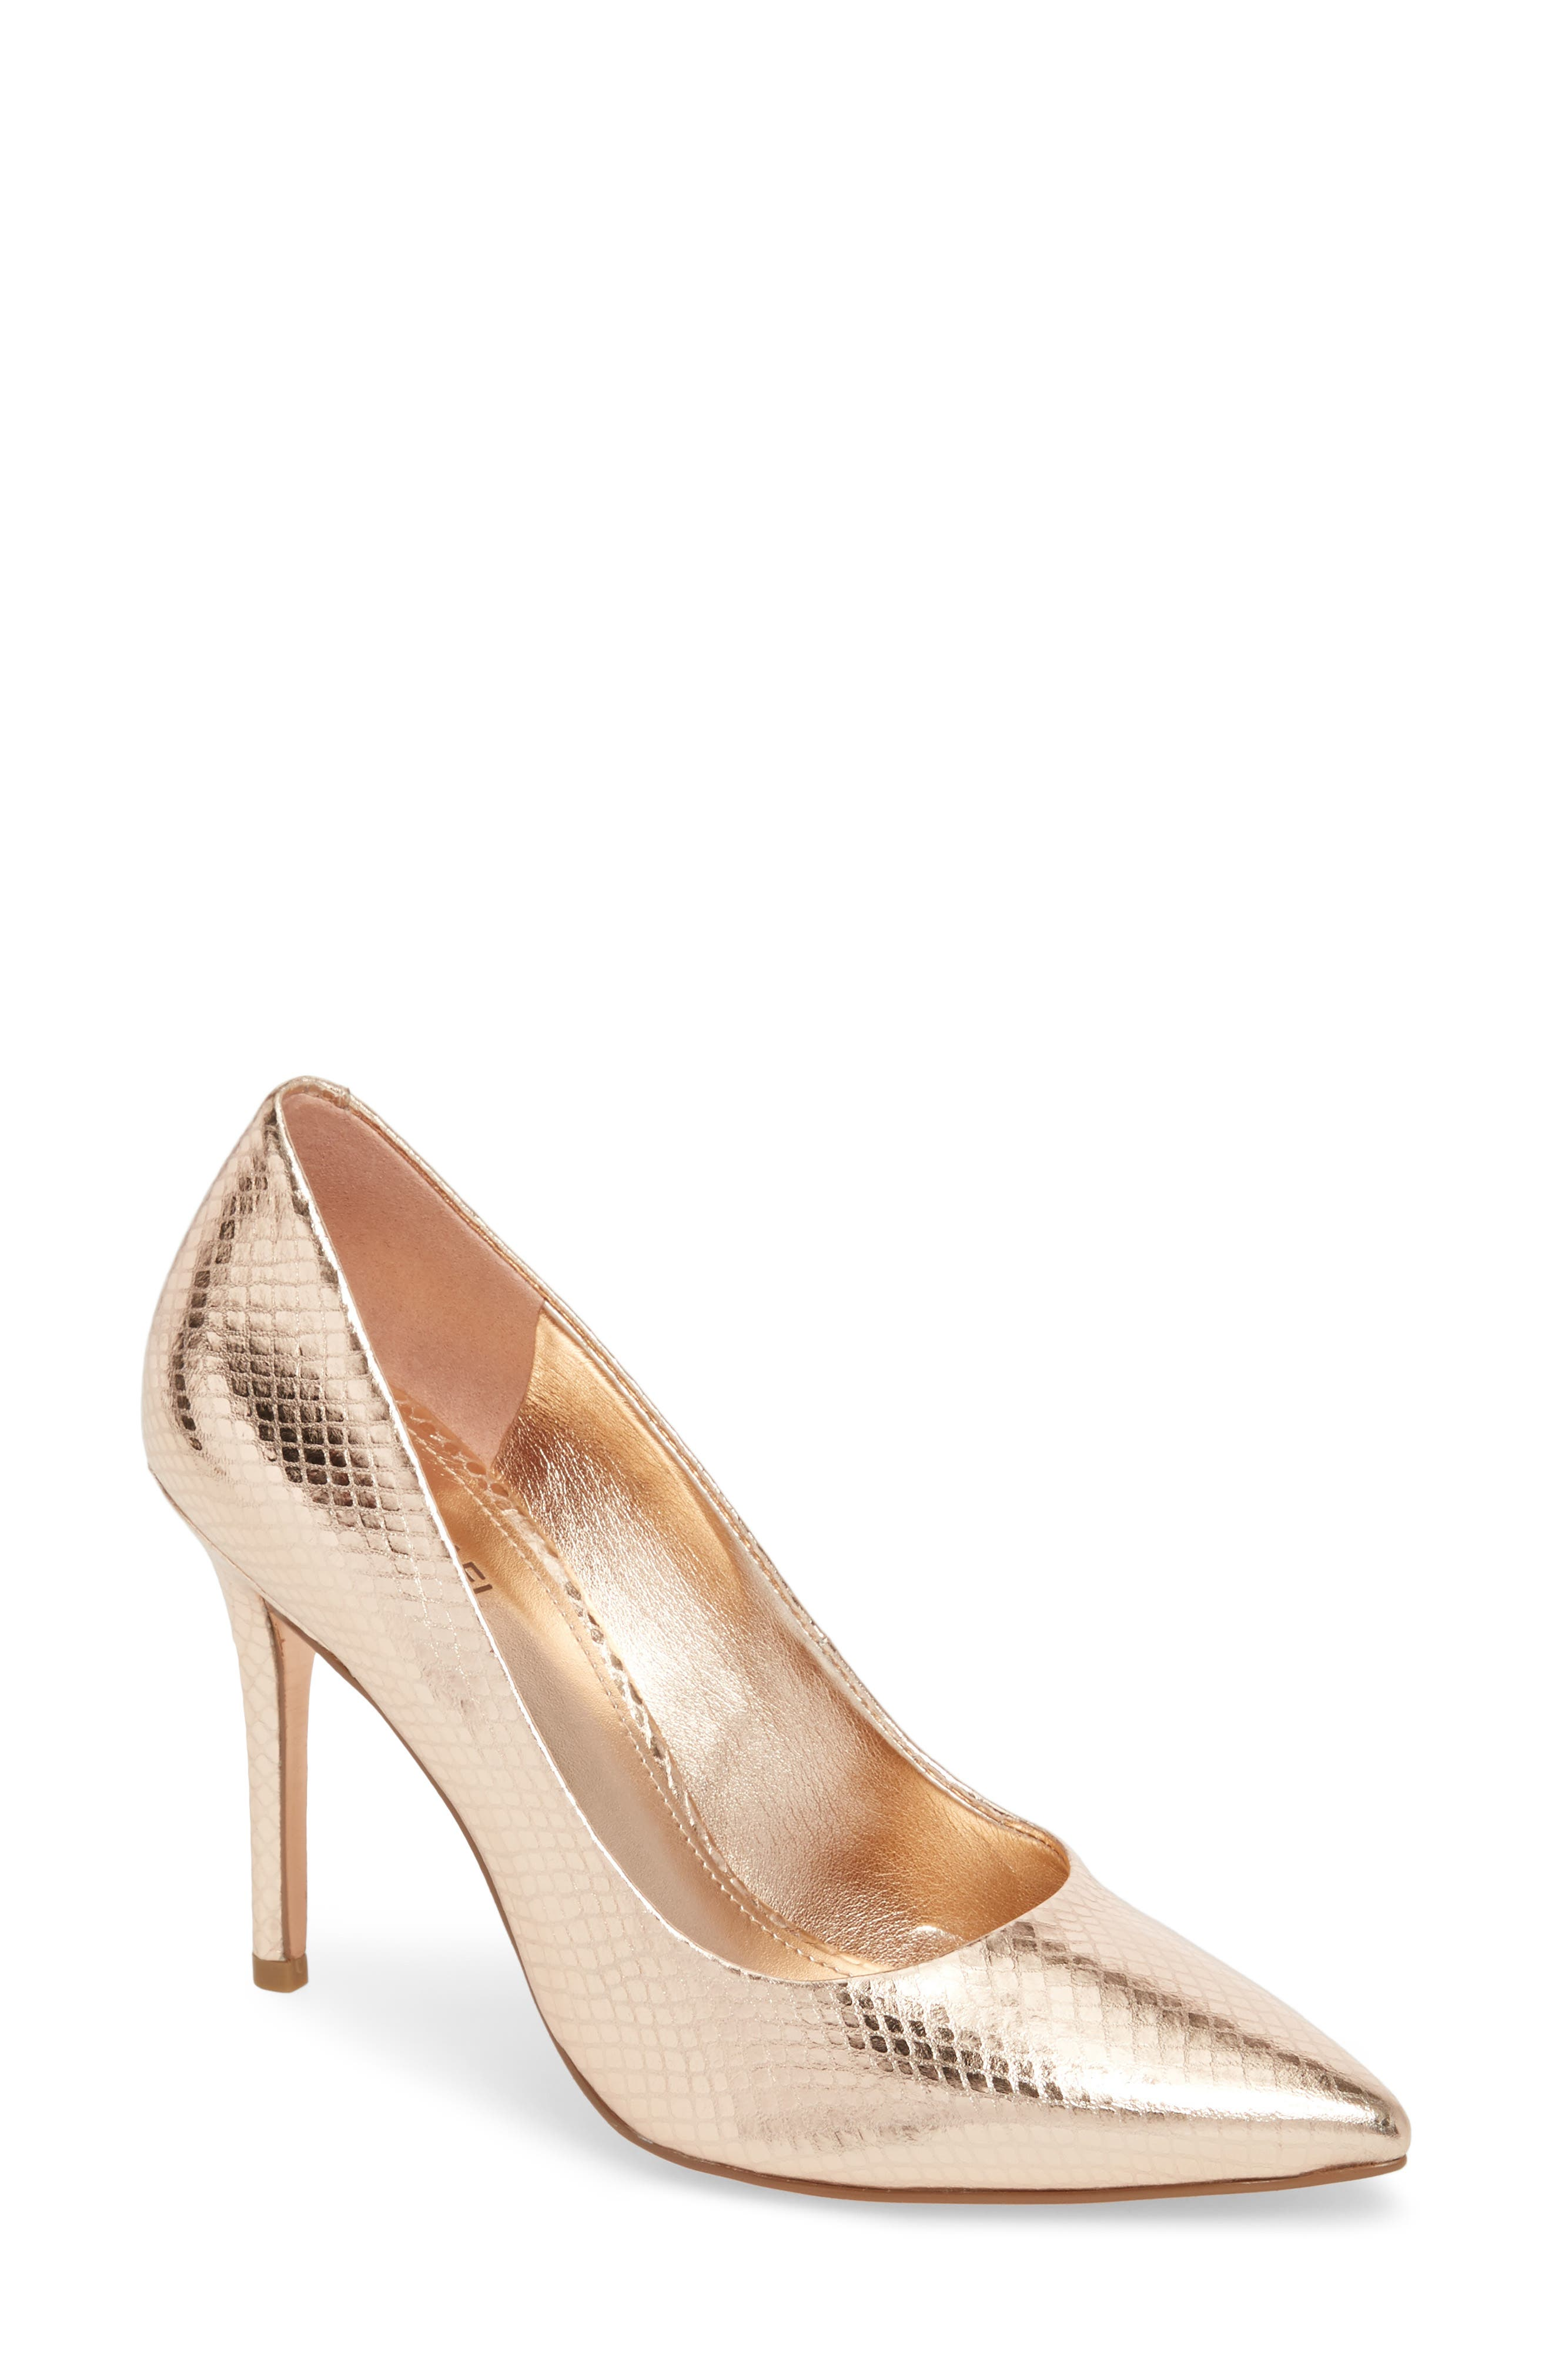 Claire Pointy Toe Pump,                         Main,                         color, Soft Pink Snake Print Fabric